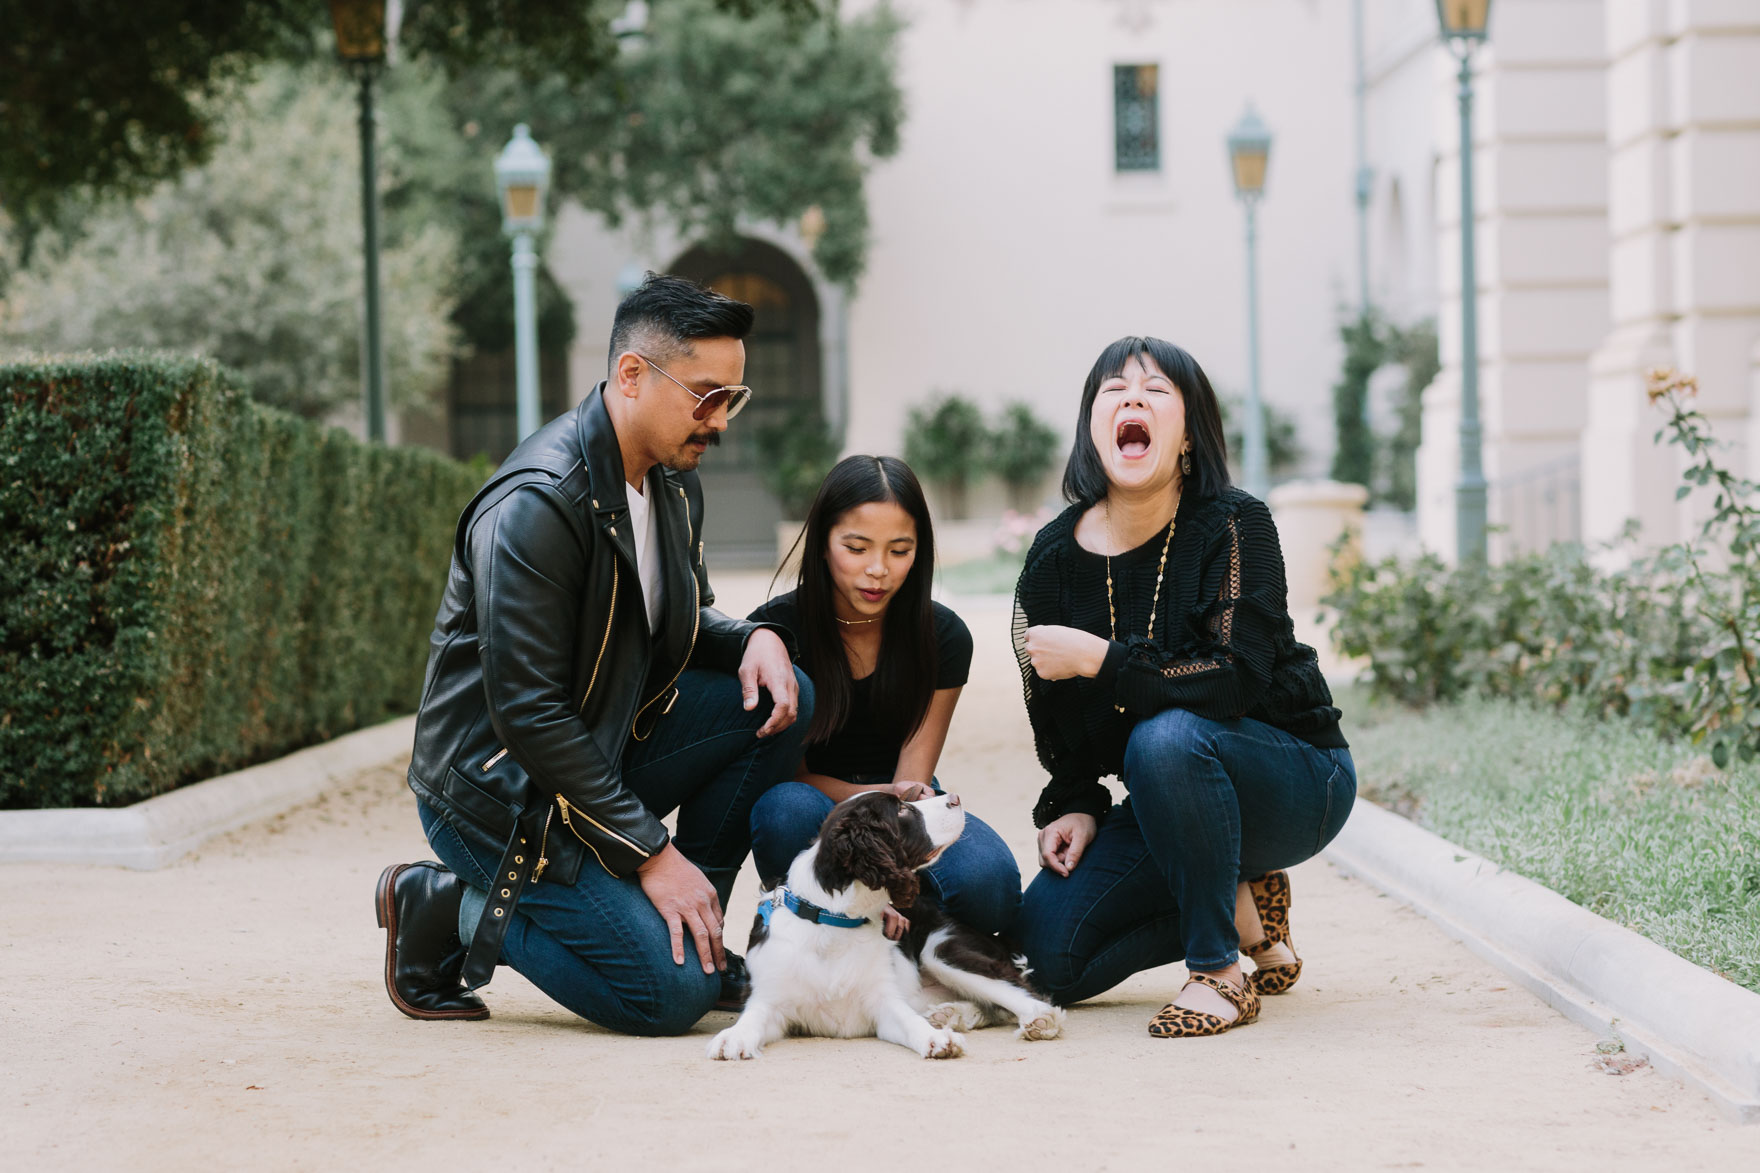 Neighborhood Fun in Pasadena – Photo by Let's Frolic Together